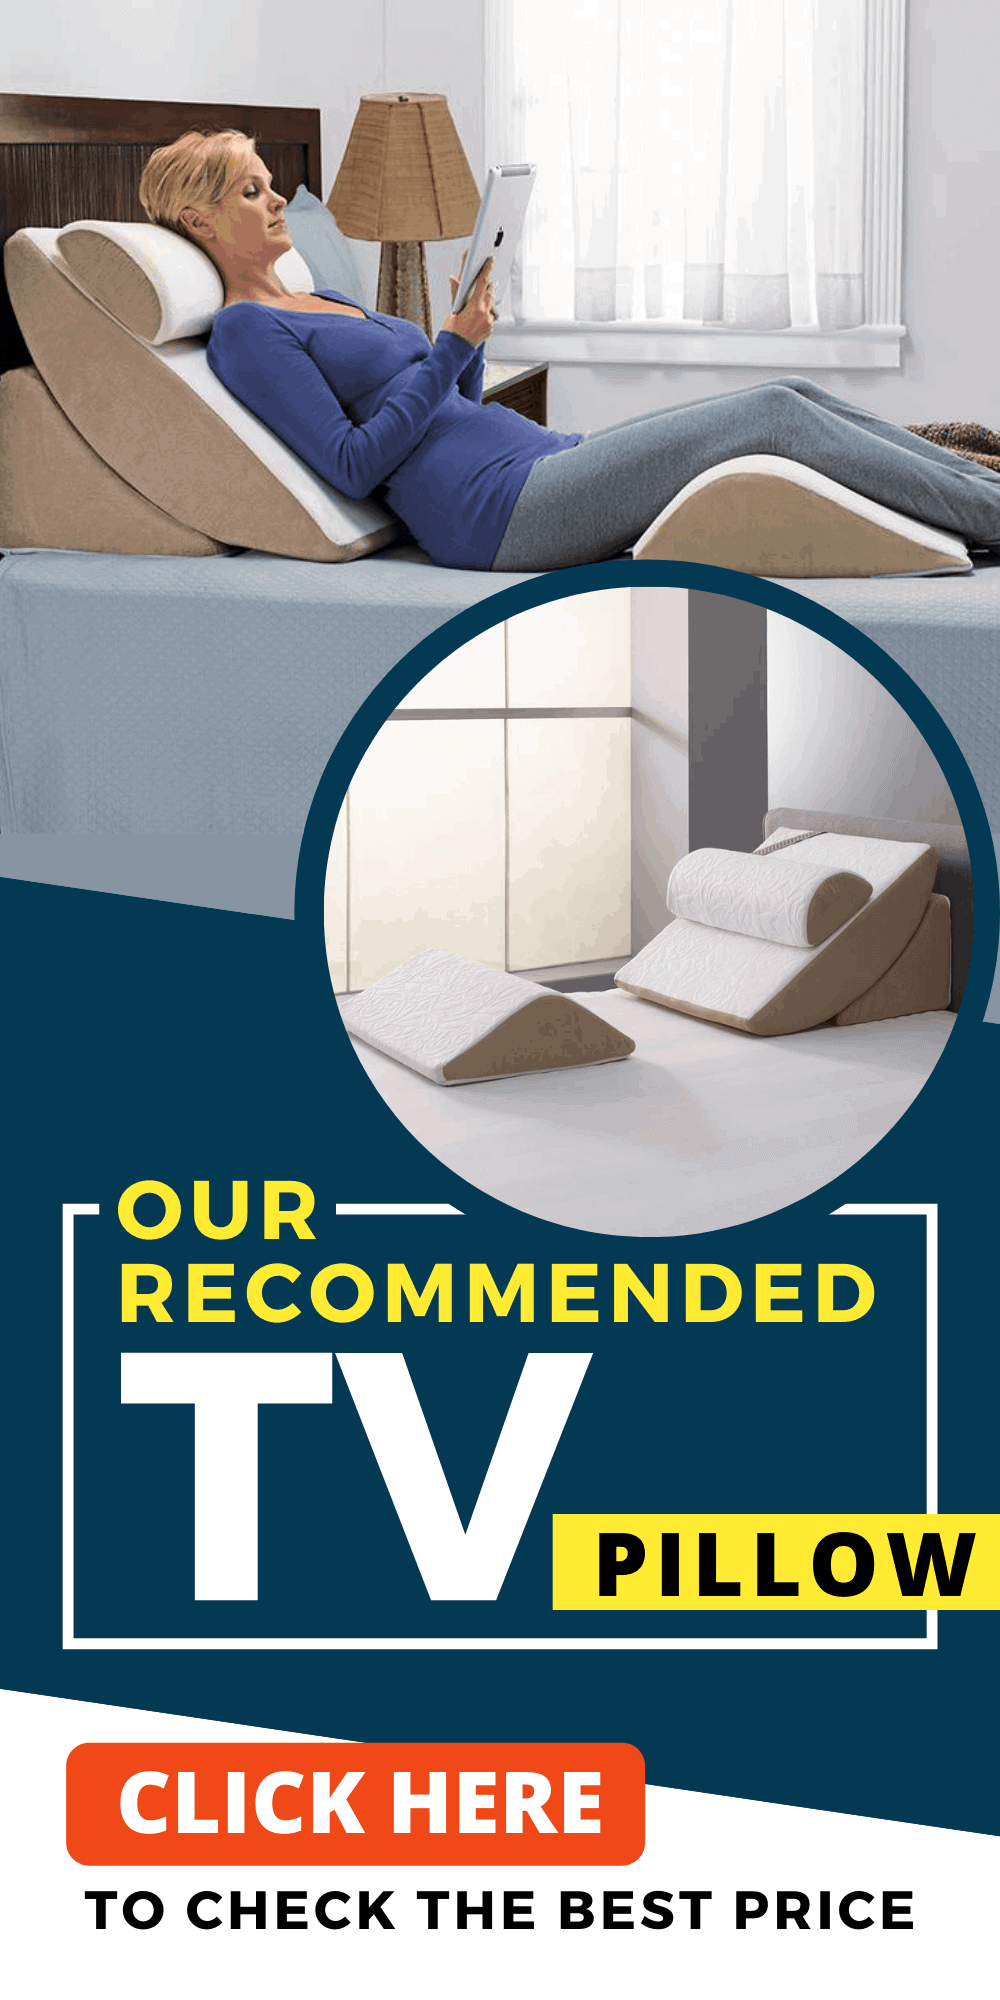 Recommended TV Pillow - Click here to check the best price!